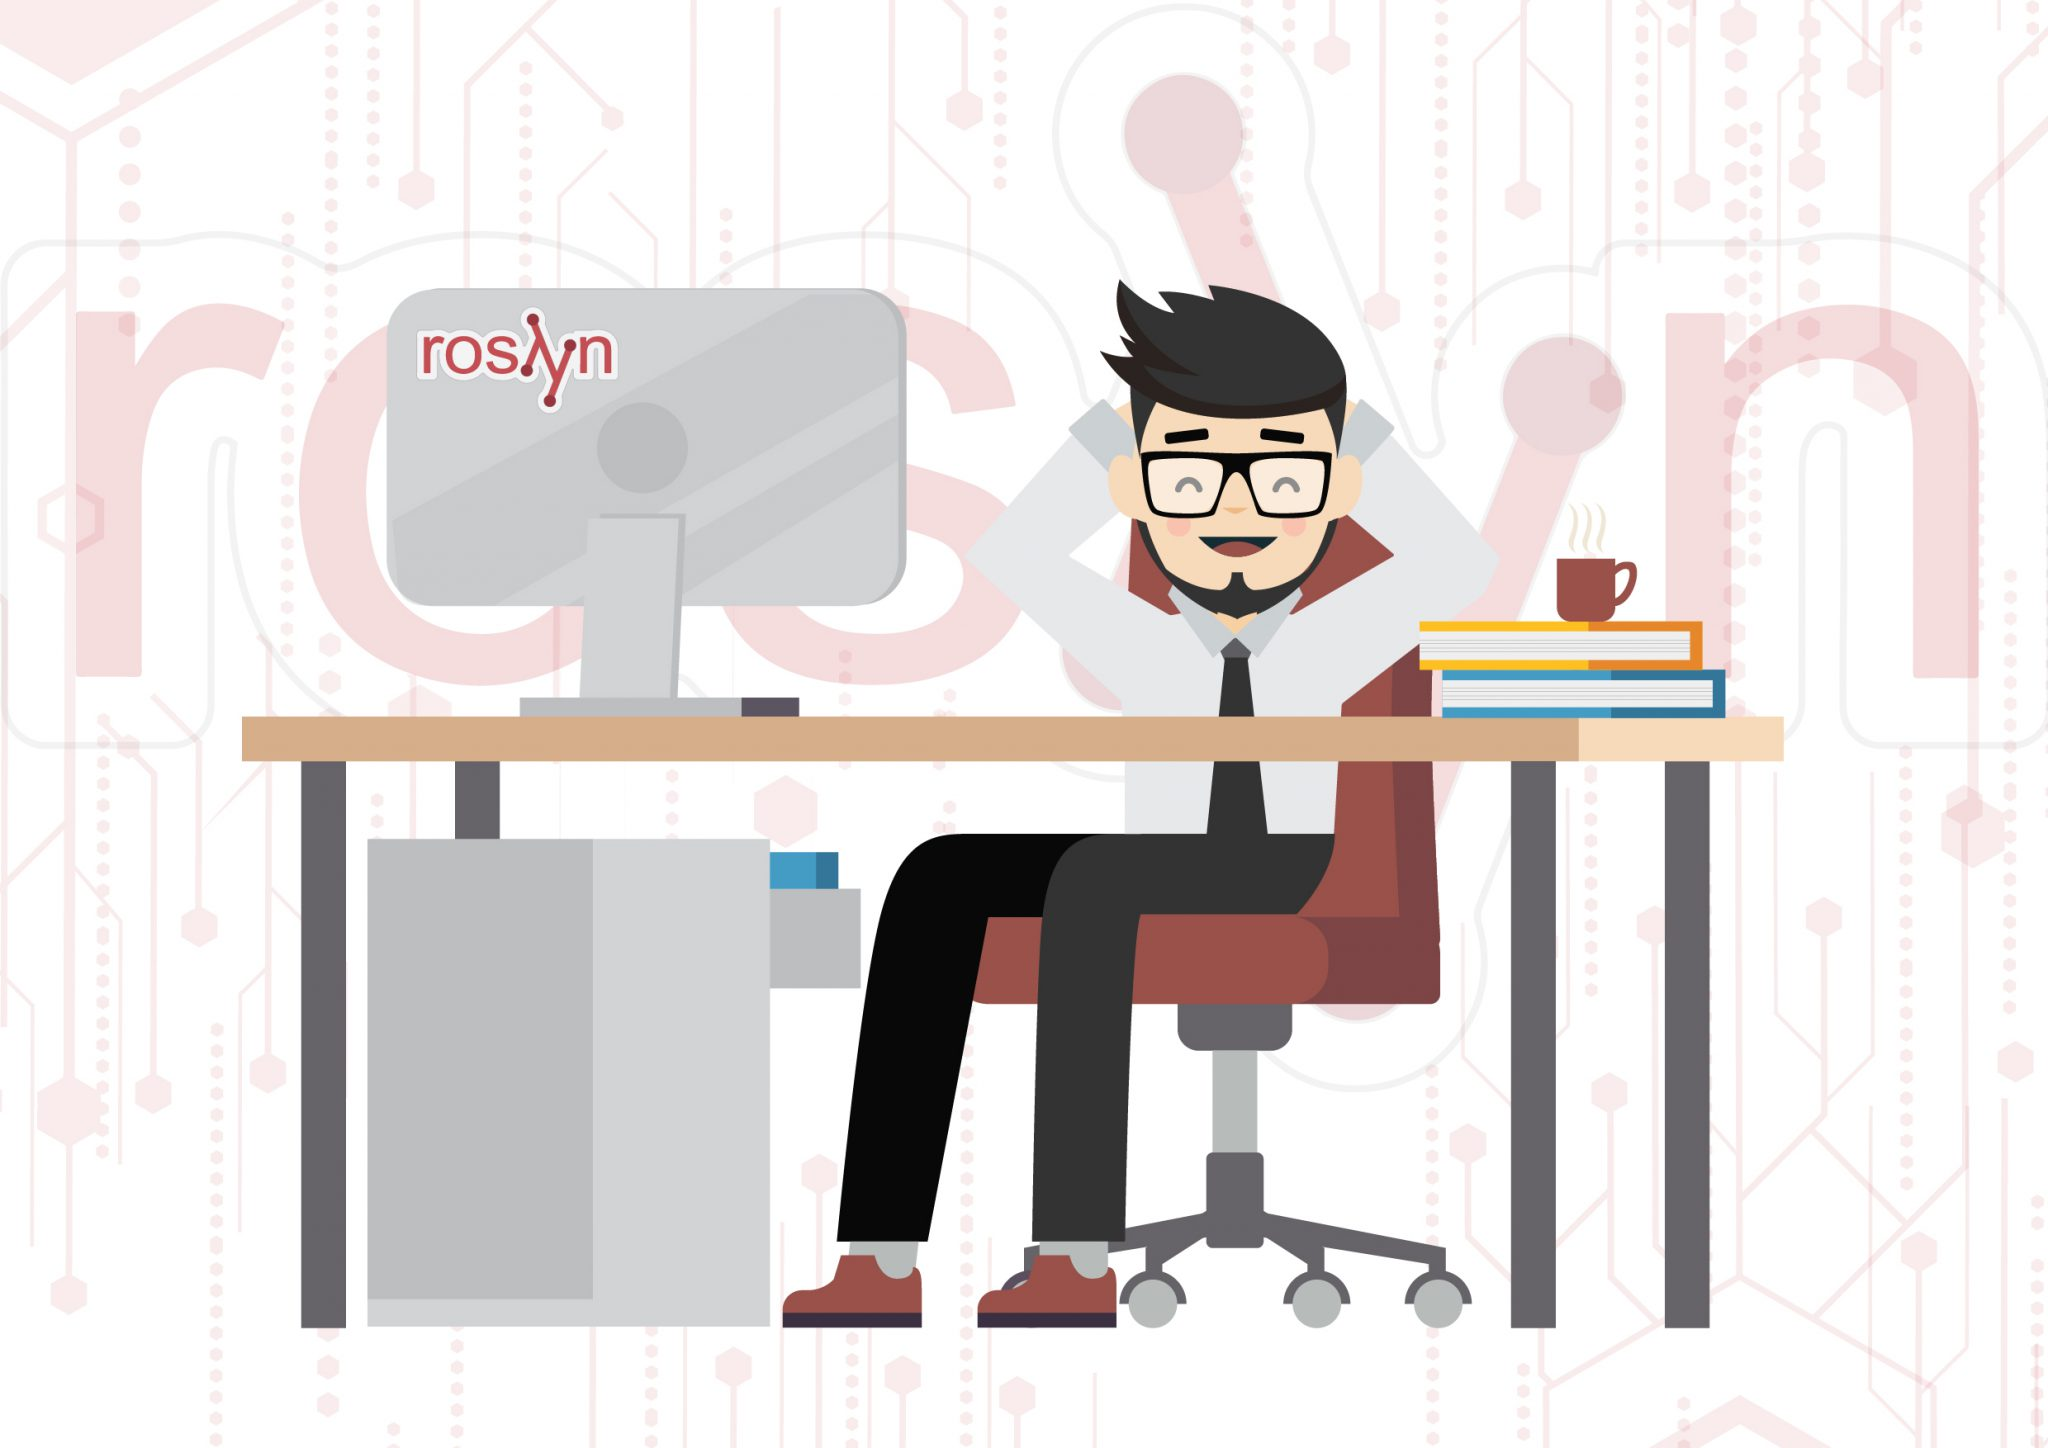 Microsoft Roslyn – using the compiler as a service